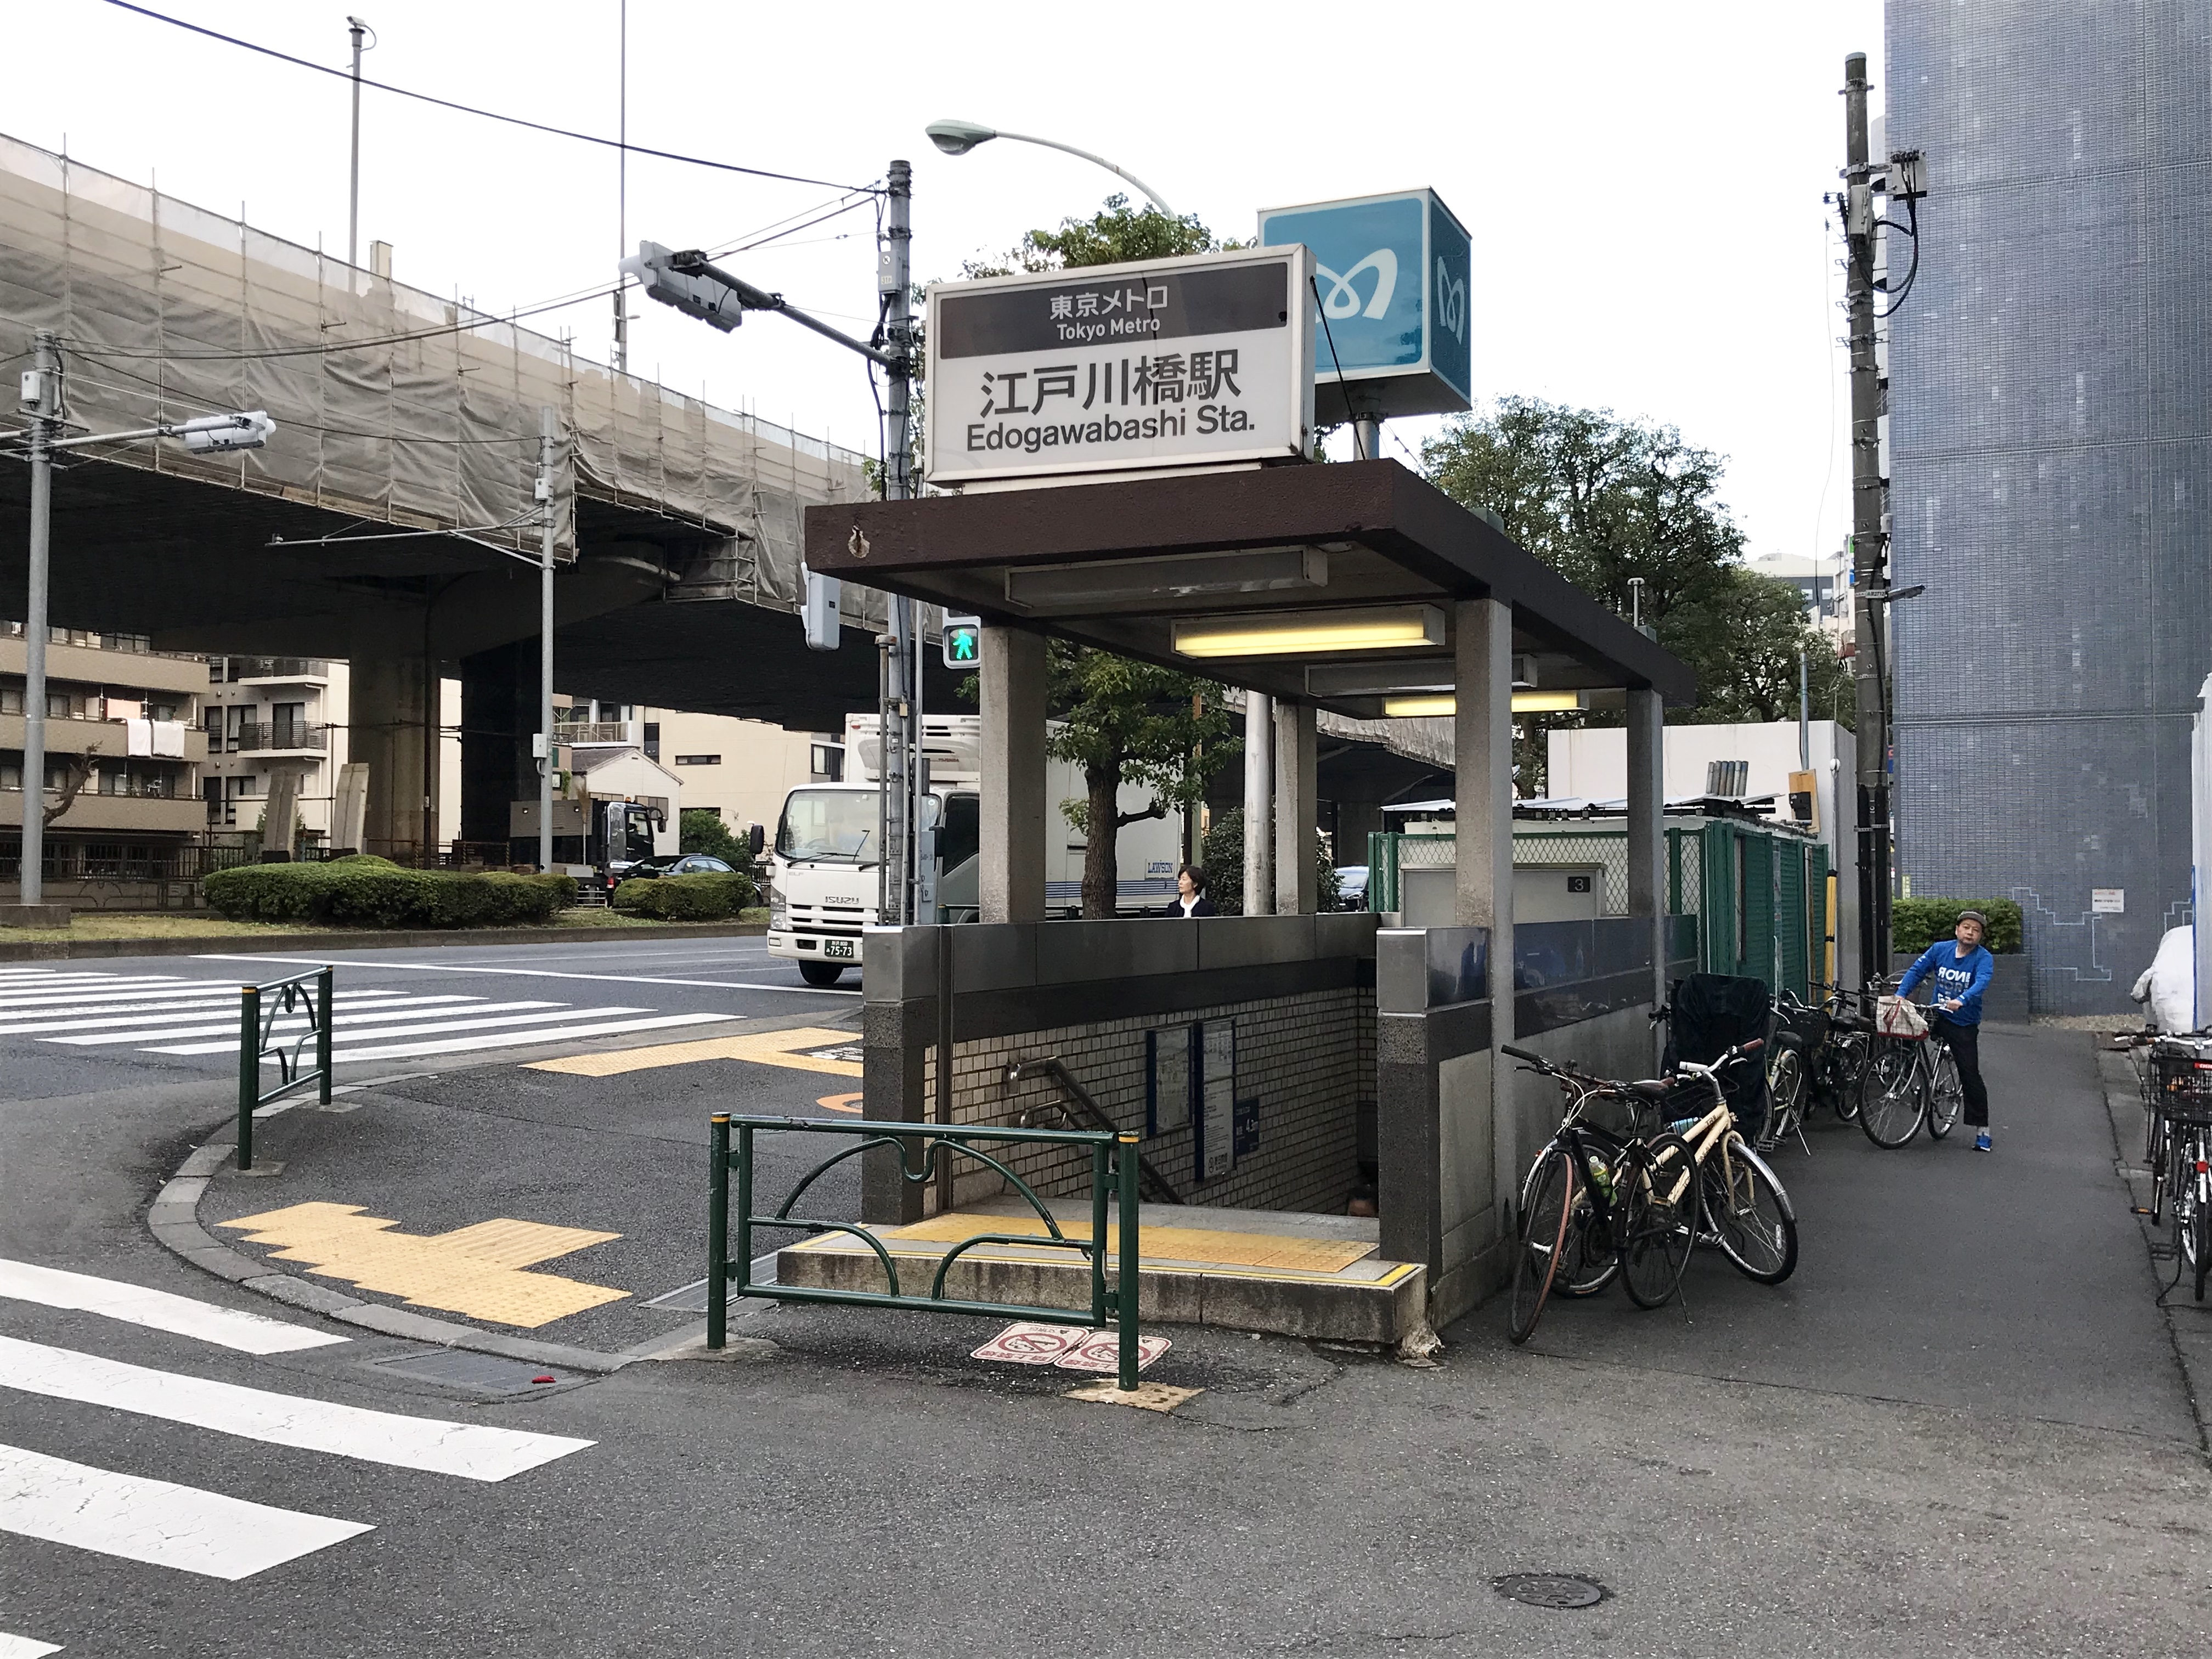 https://upload.wikimedia.org/wikipedia/commons/f/f2/Edogawabashi-Station-Exit3.jpg